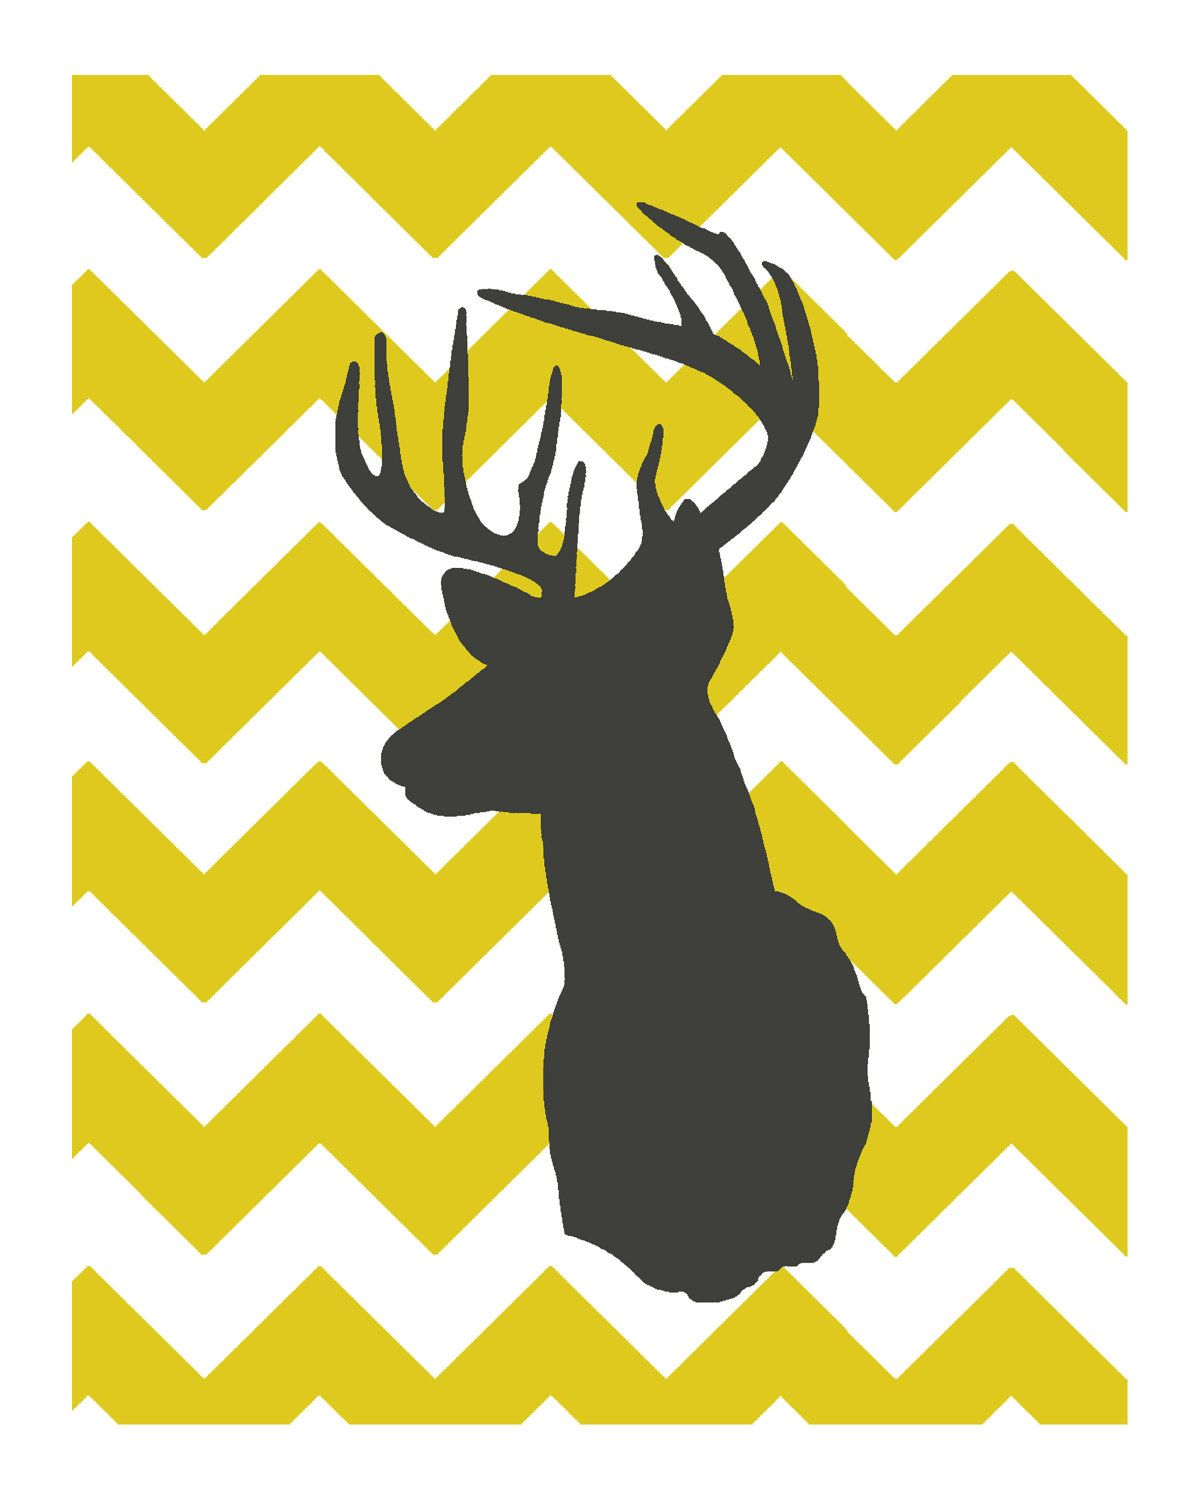 8x10 Digital Print of Deer Silhouette in Charcoal with Mustard Yellow  Background. $12.00, via